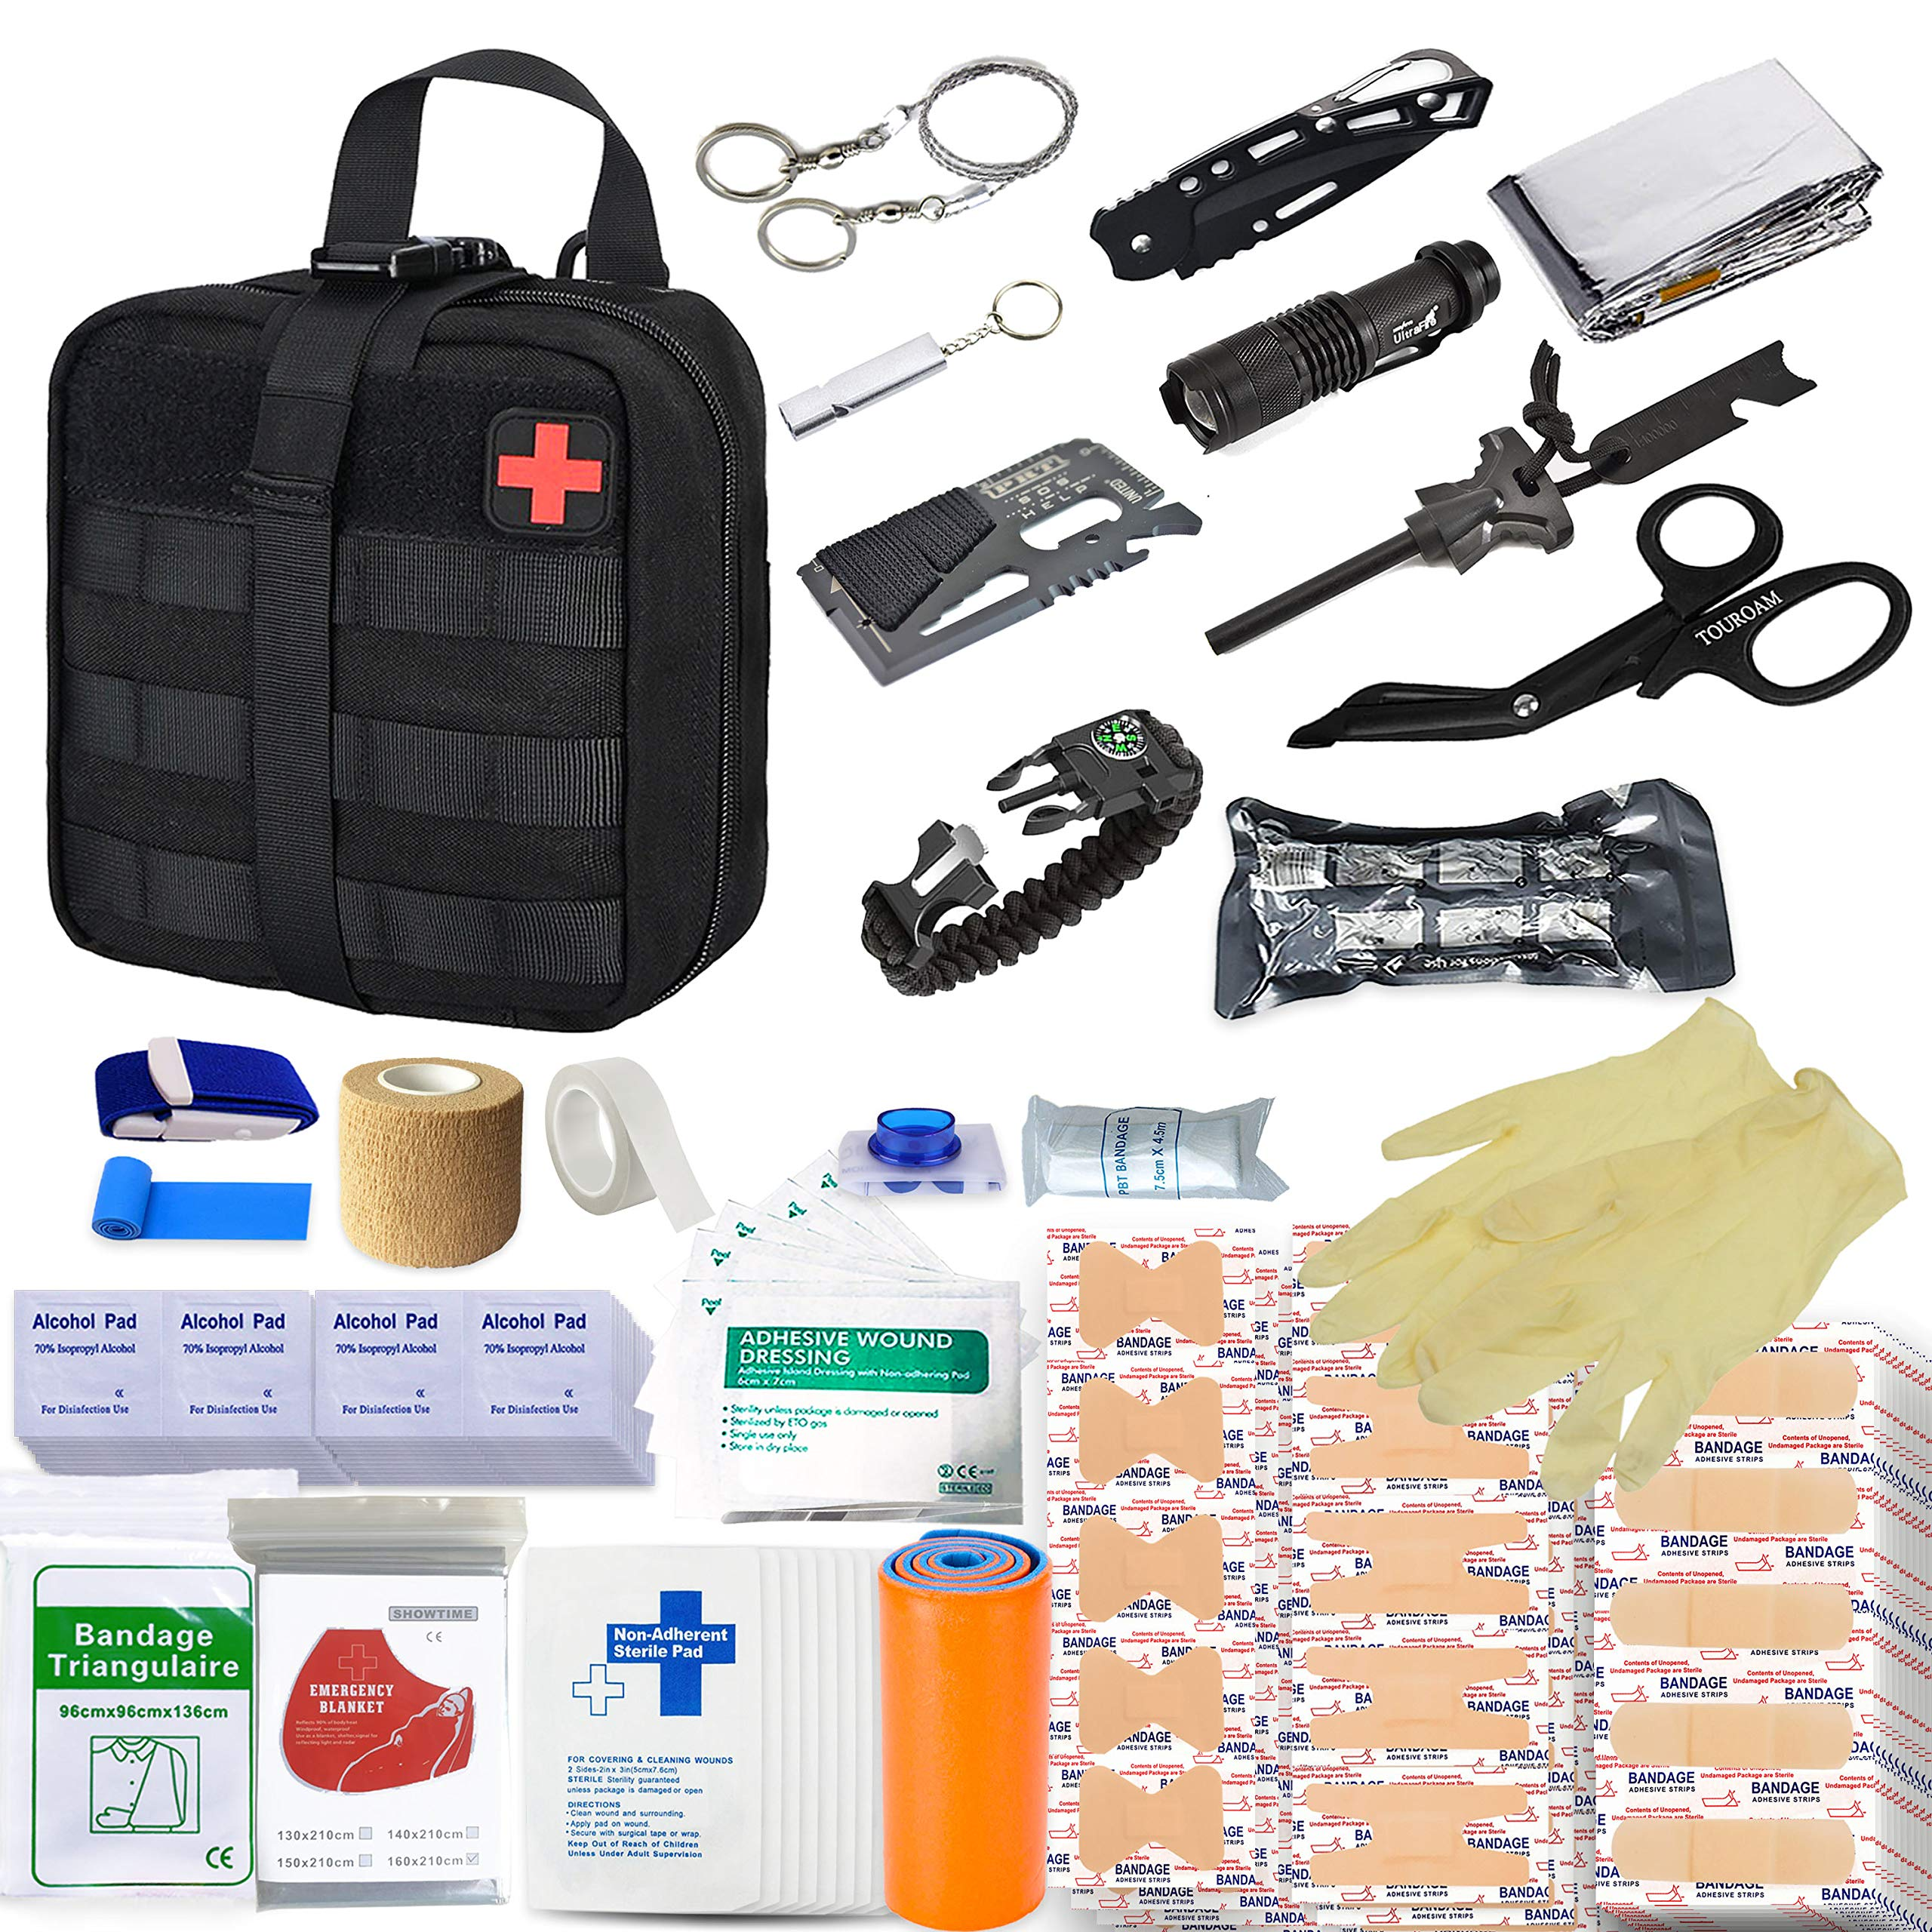 TOUROAM Multitool Emergency SOS Survival Kit | Tactical Admin Pouch IFAK | Outdoor Military Survival Kit- for Camp, Adventure, Kayak, Hunt, Hike